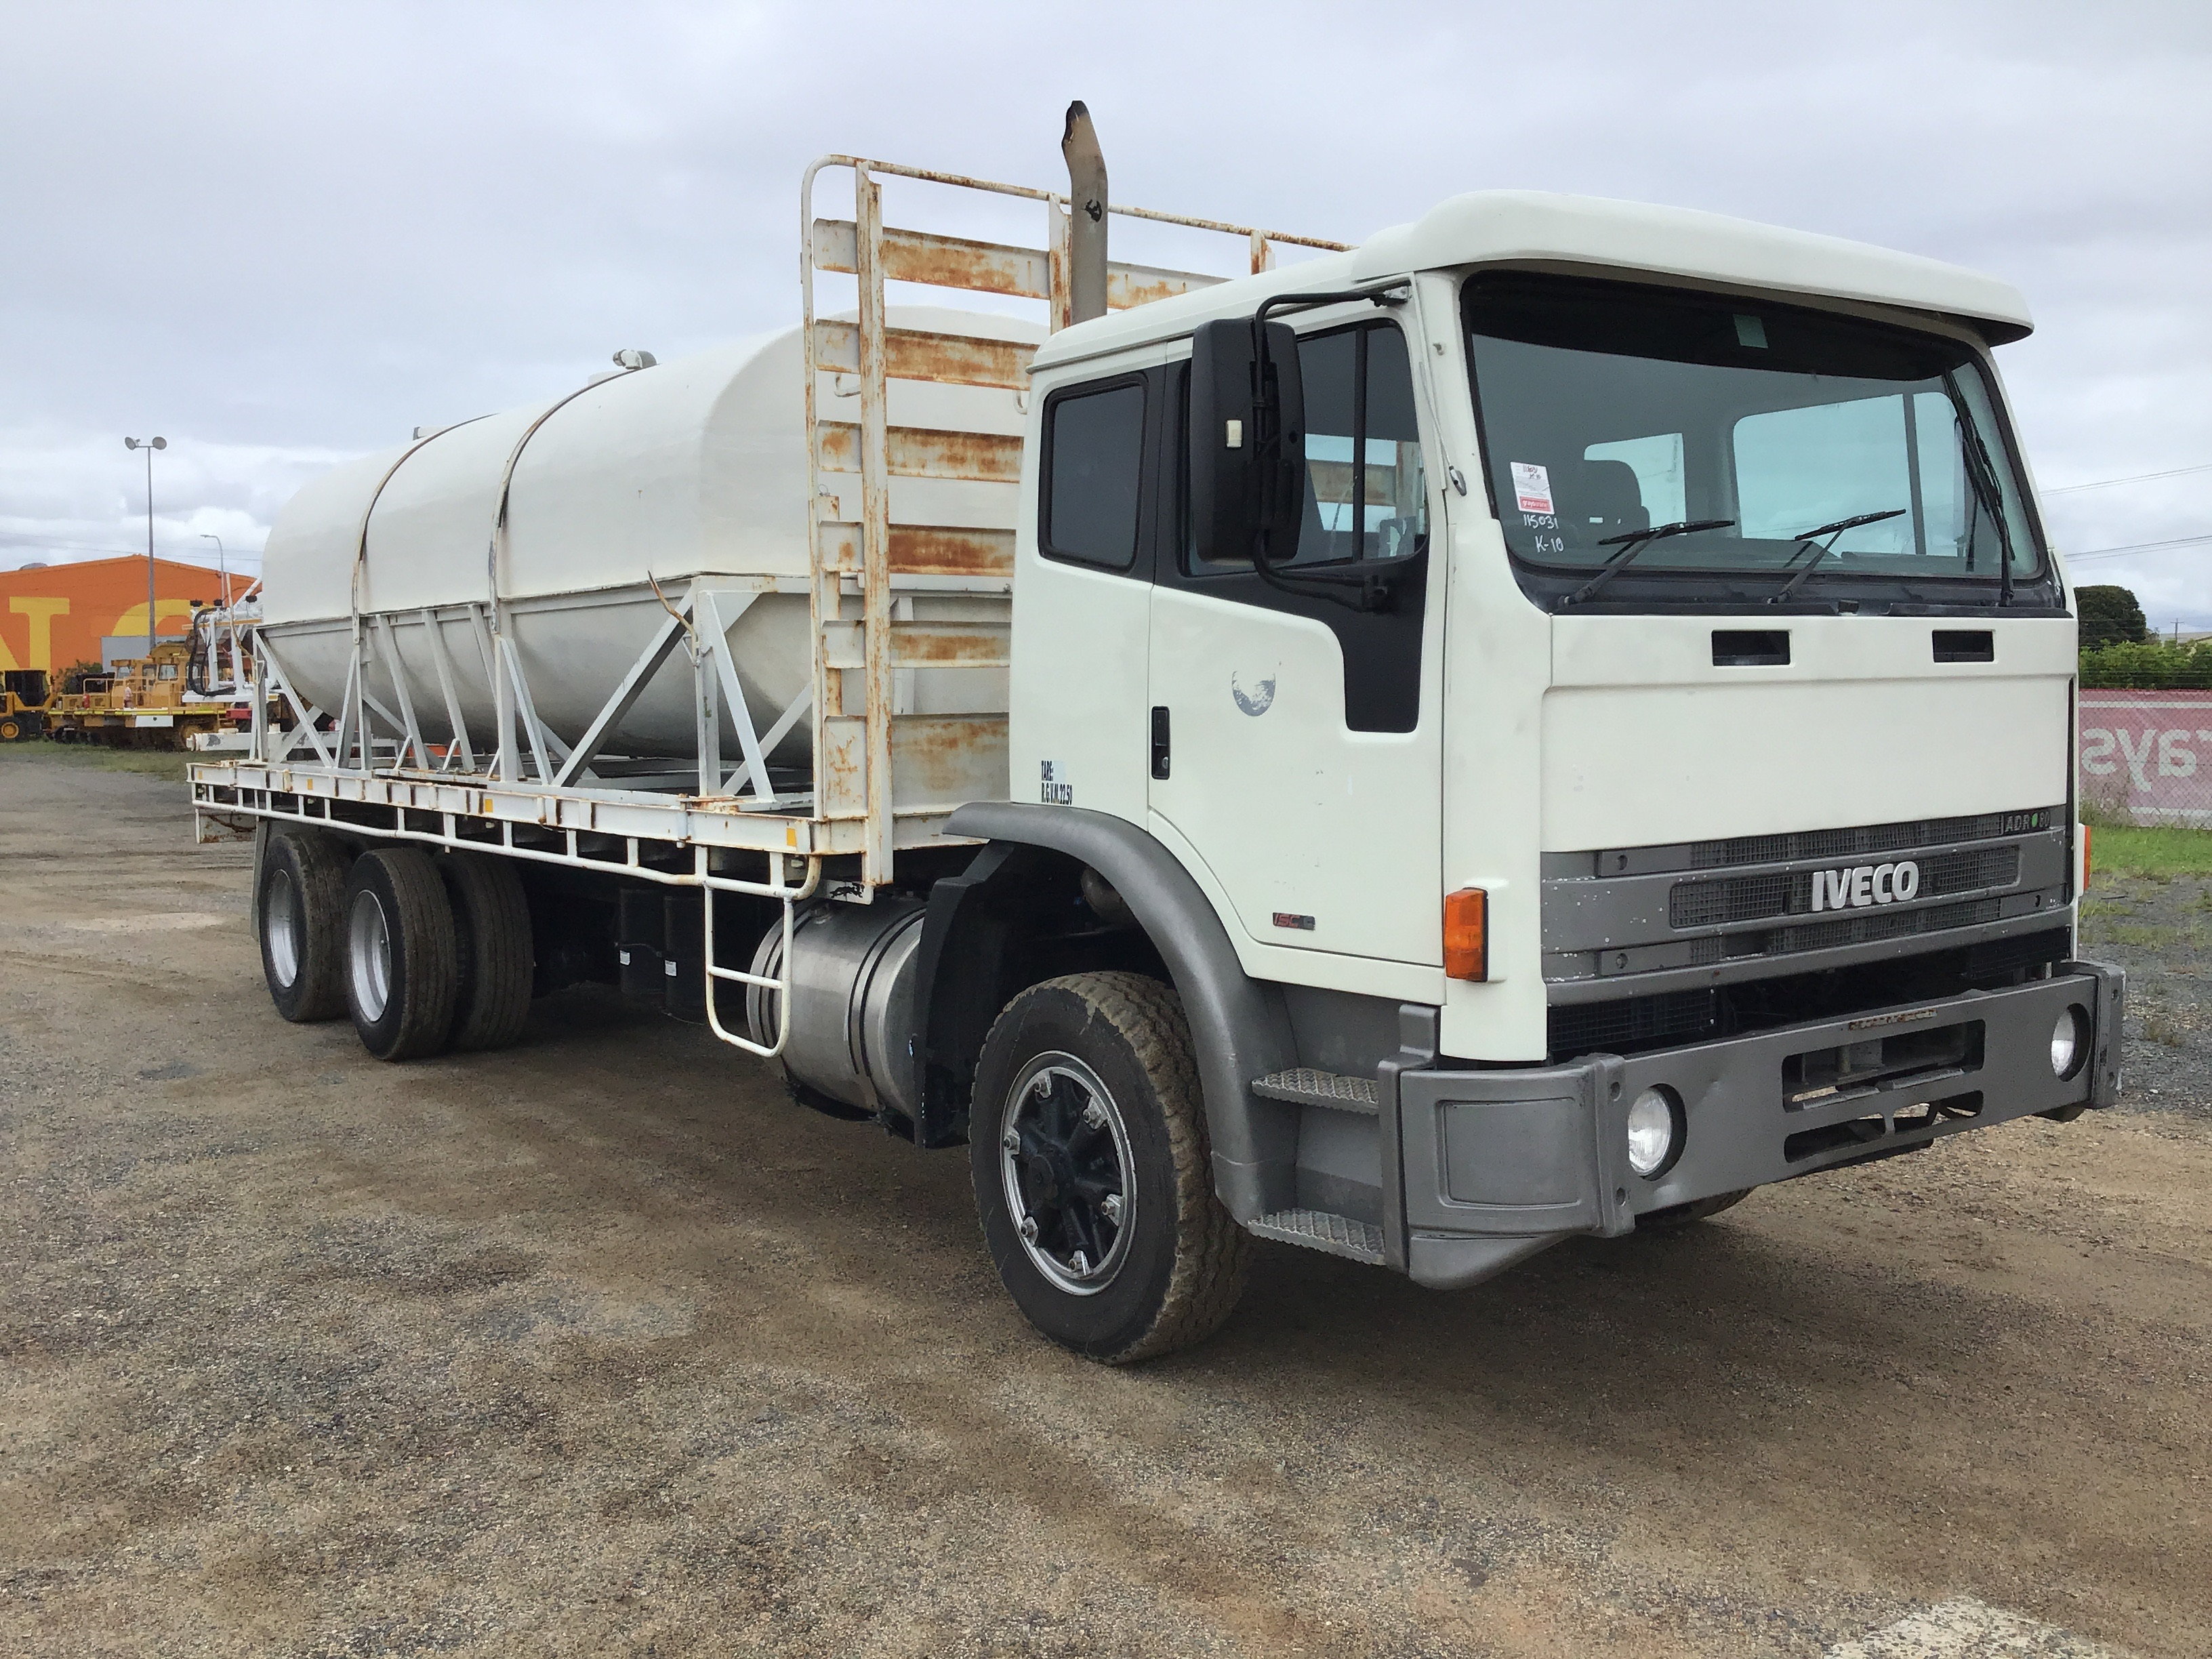 2002 Iveco Acco 6 x 4 Water Truck